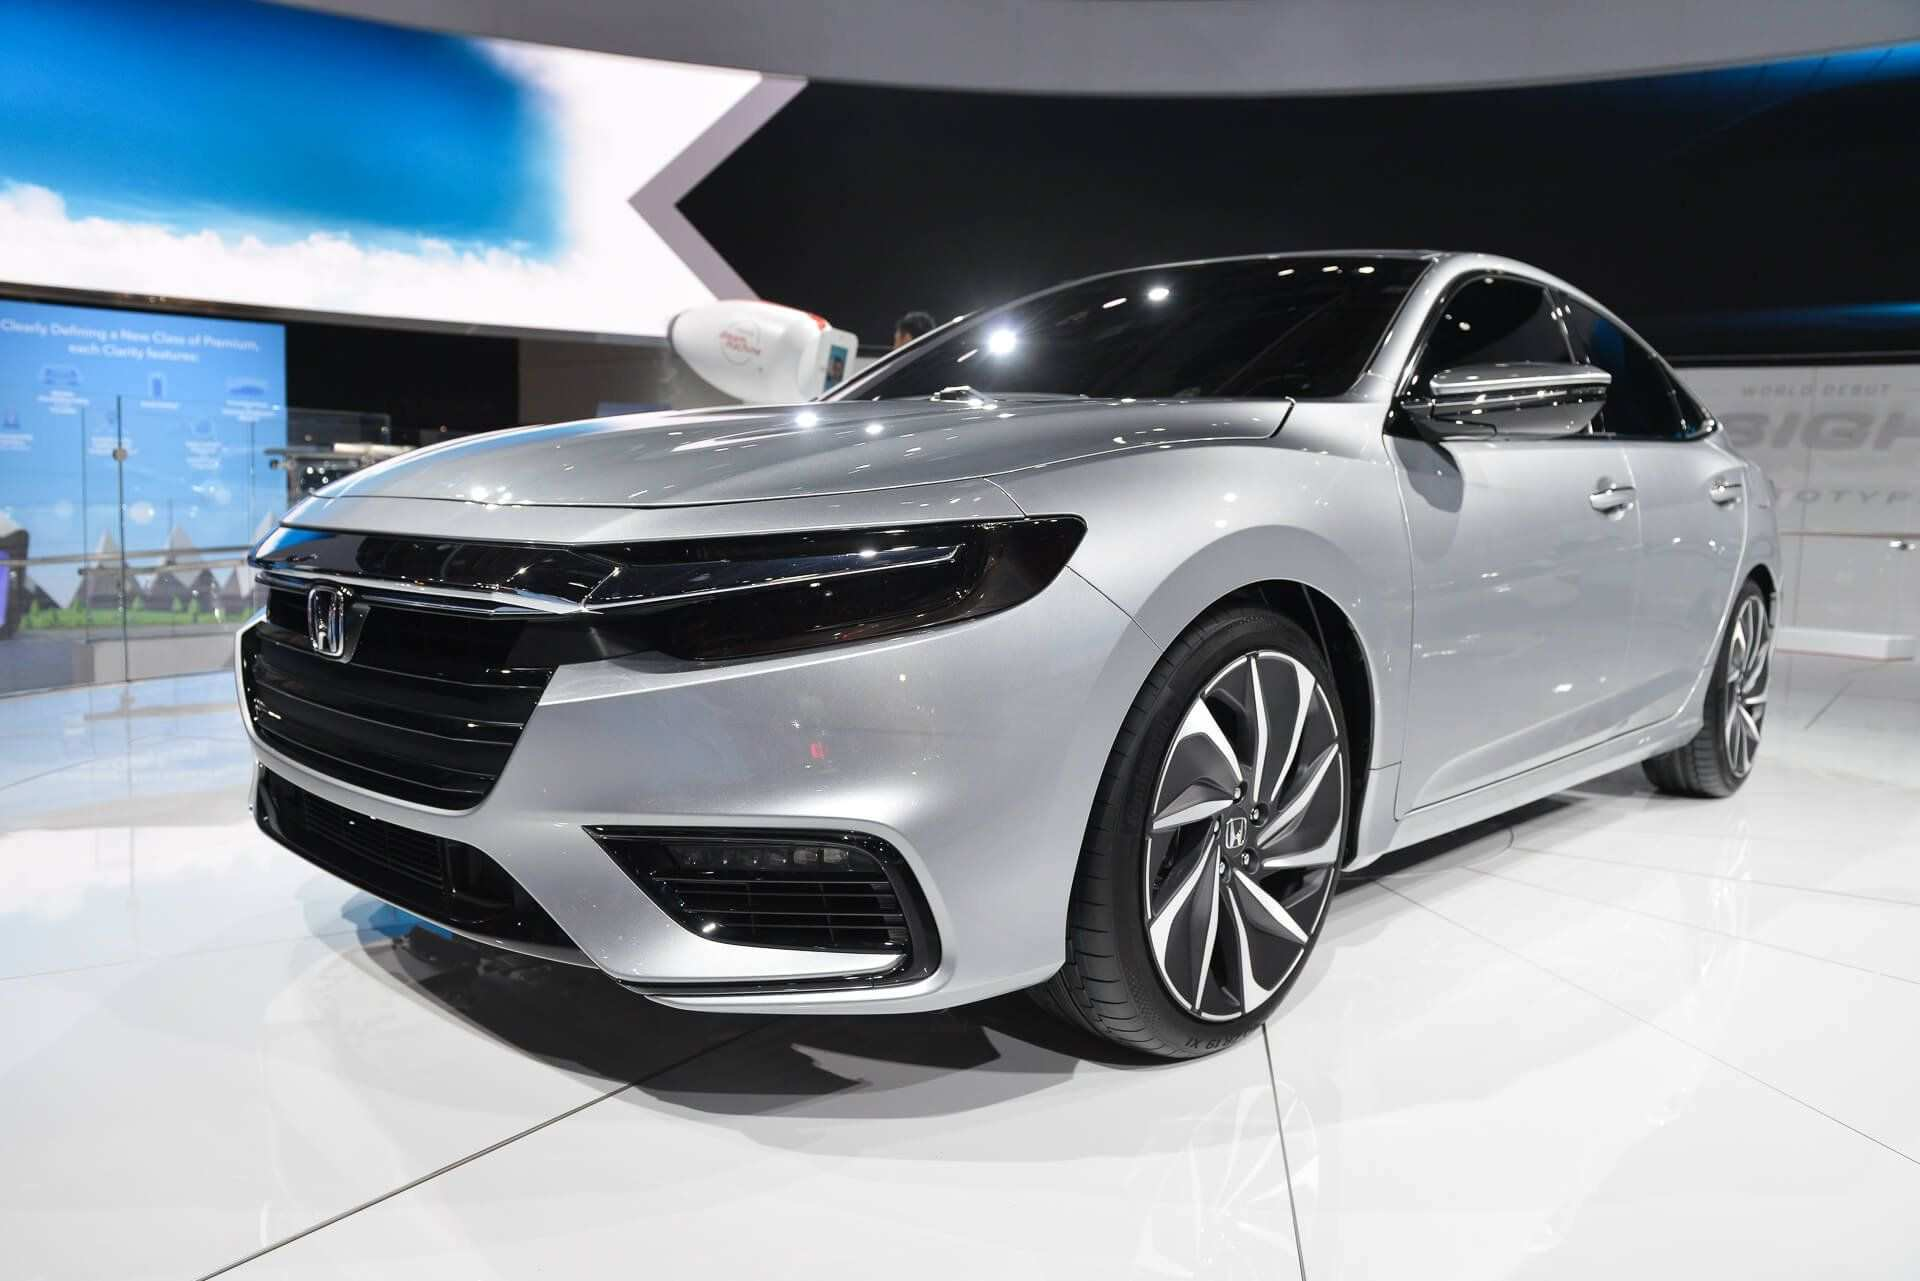 34 Gallery of Honda Civic 2020 Concept Research New for Honda Civic 2020 Concept